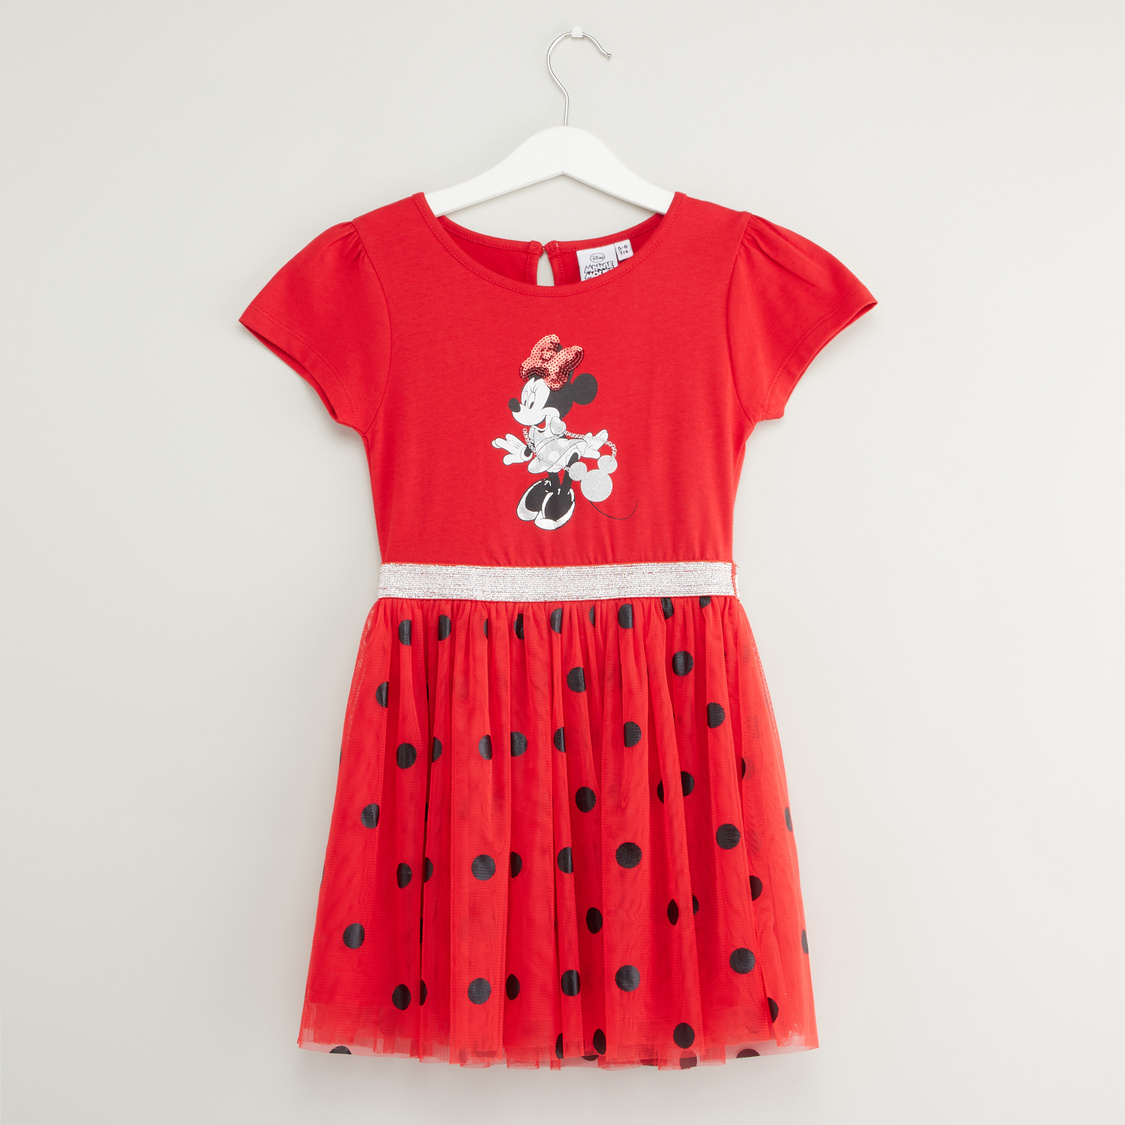 Minnie Mouse Print Dress with Round Neck and Short Sleeves